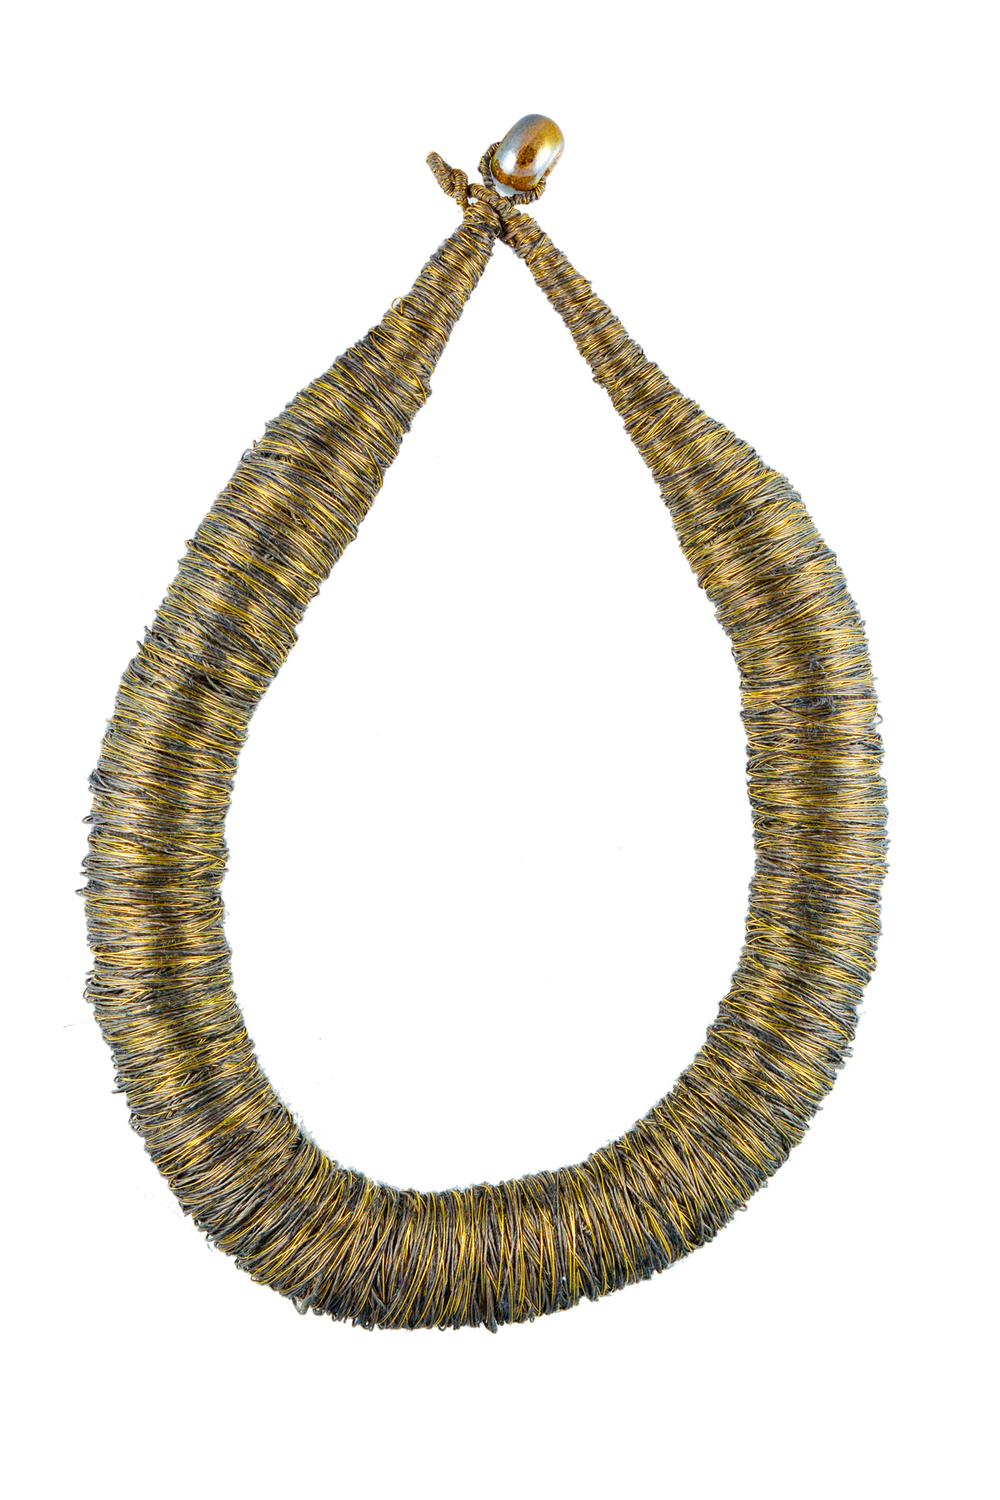 PANNI_VESSEY_GRAPHIT_GOLD_NECKLACE.jpg